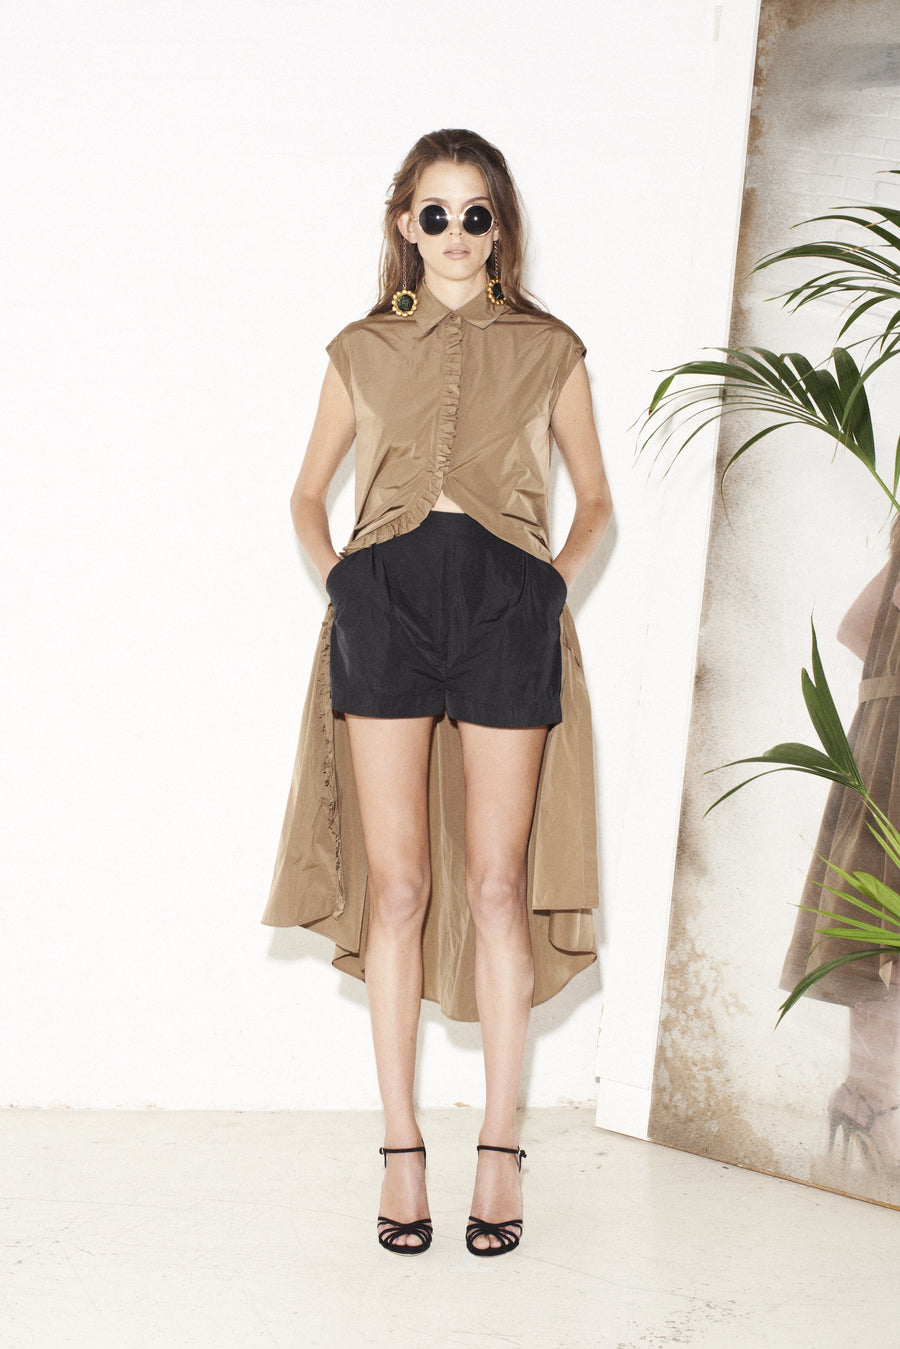 SS2013 / Look 15